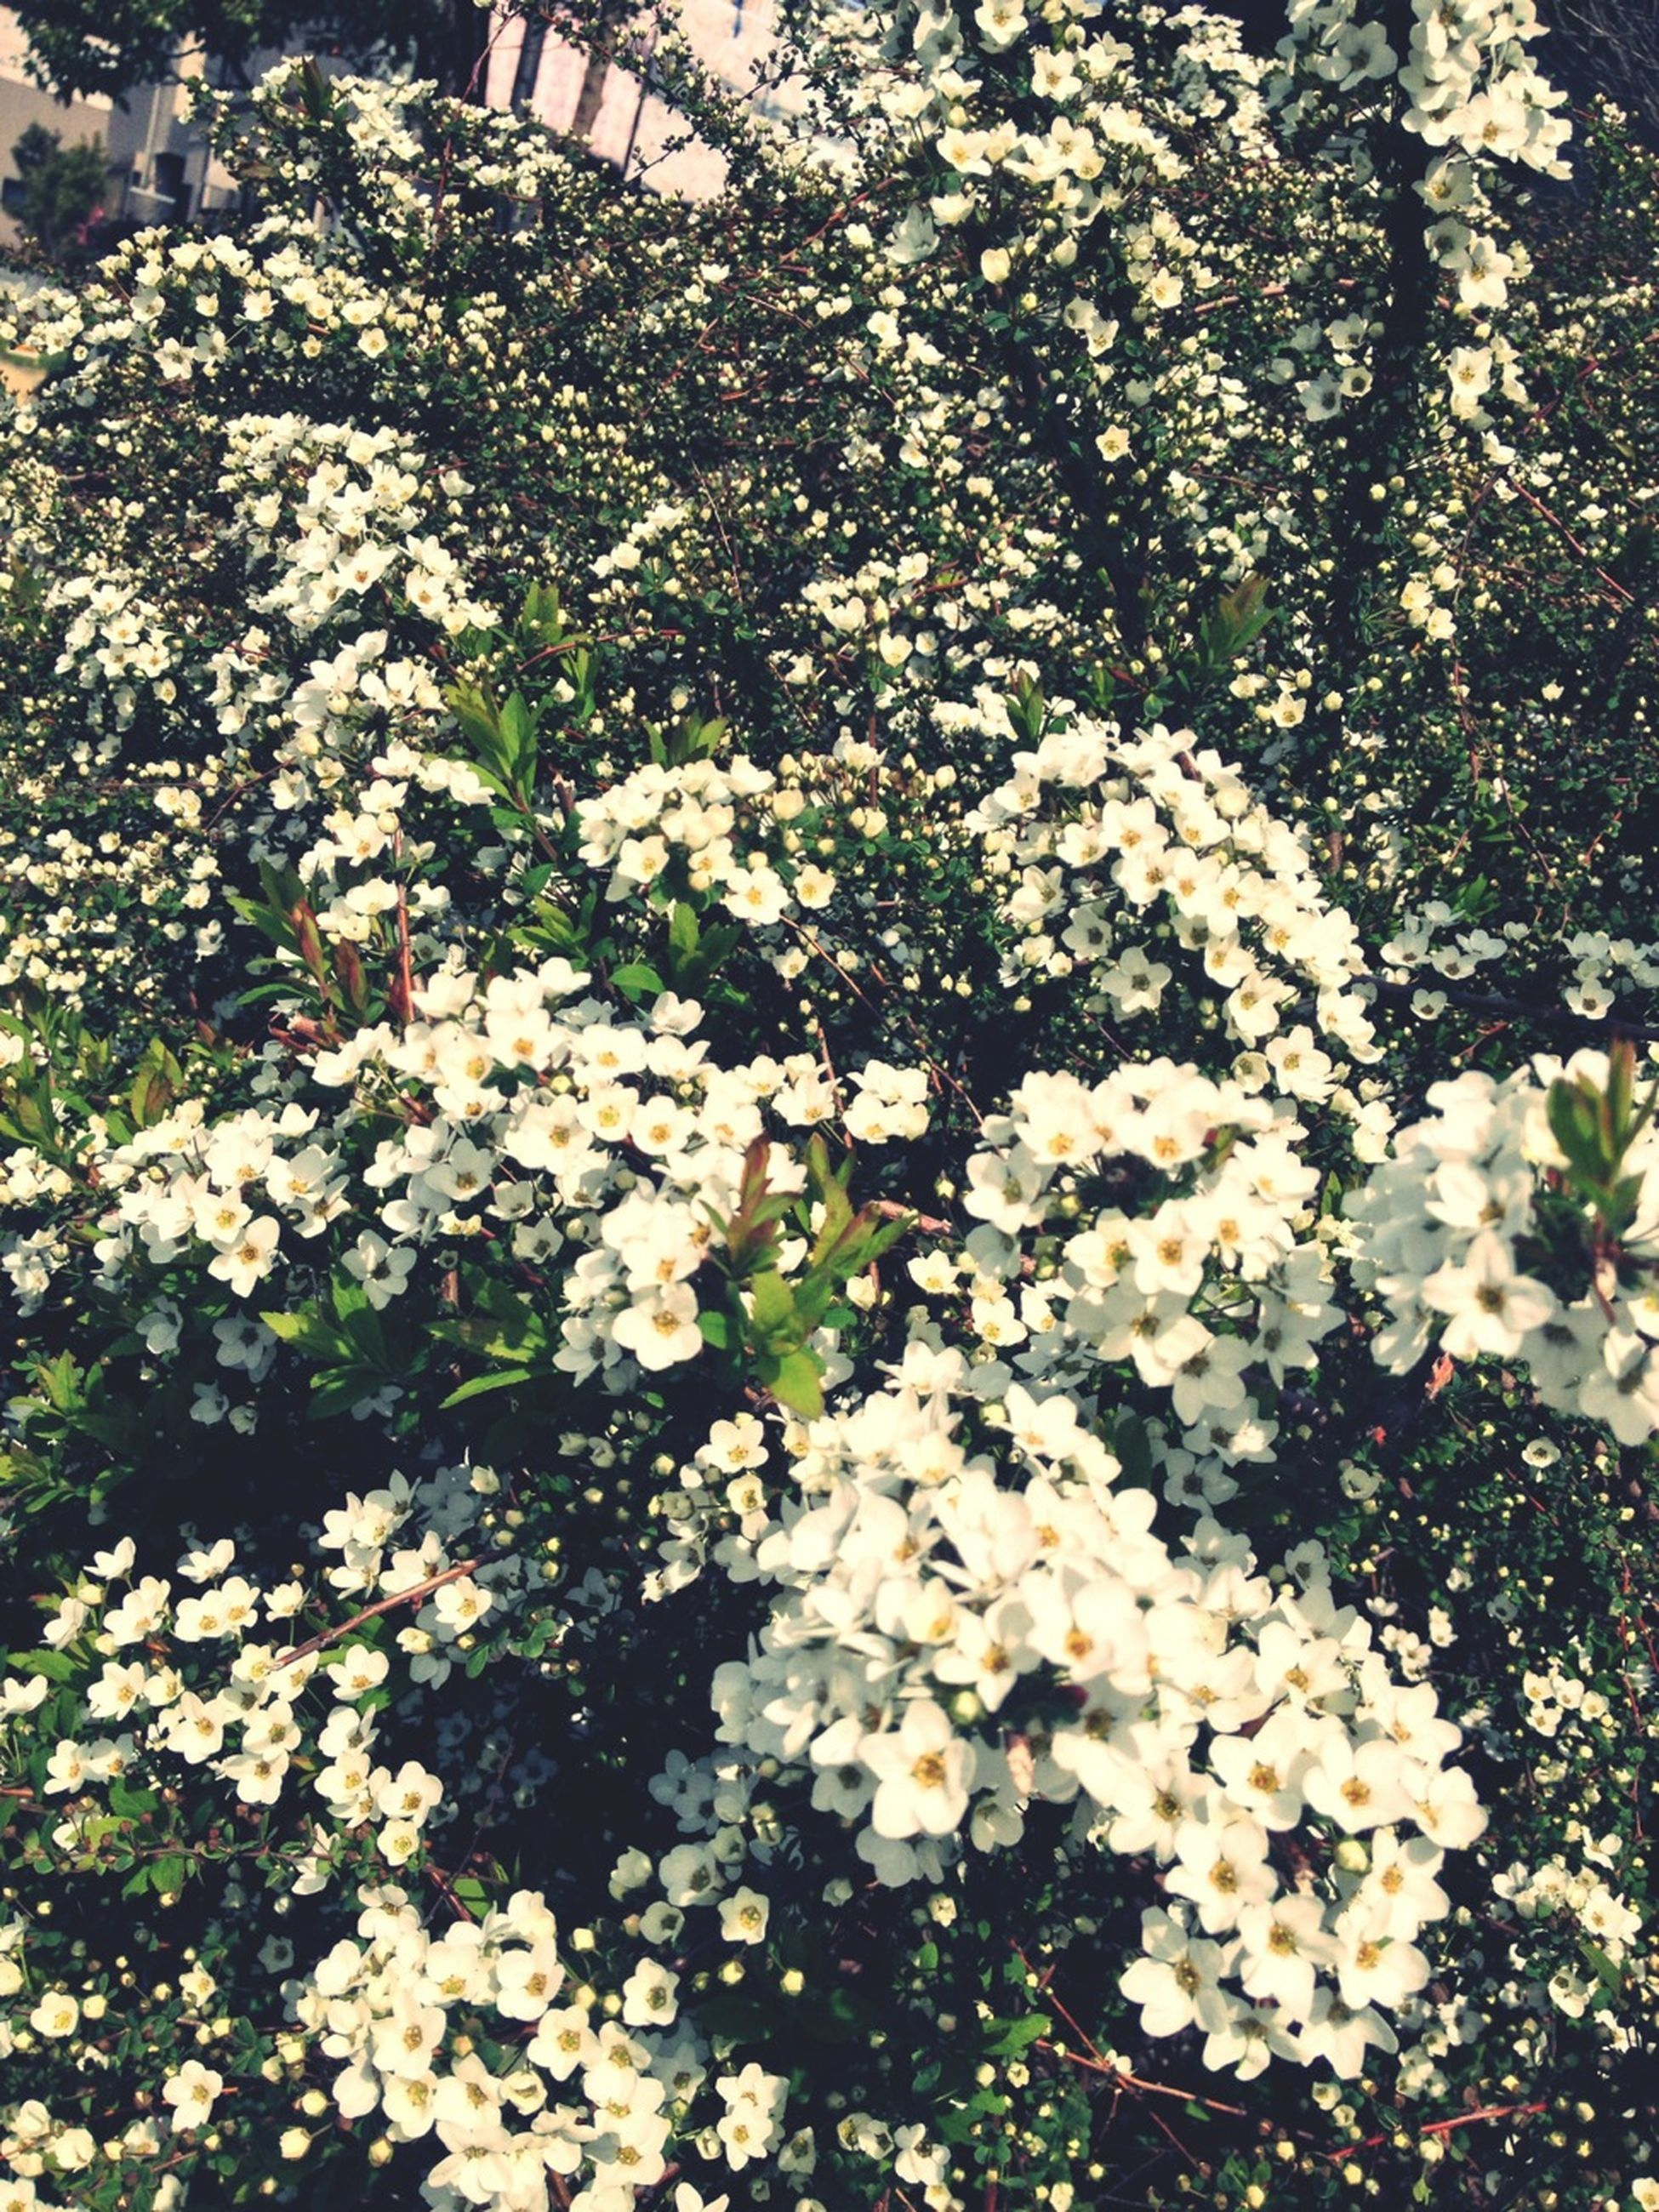 flower, freshness, growth, fragility, white color, beauty in nature, petal, blooming, nature, blossom, flower head, in bloom, high angle view, plant, springtime, abundance, tree, park - man made space, botany, day